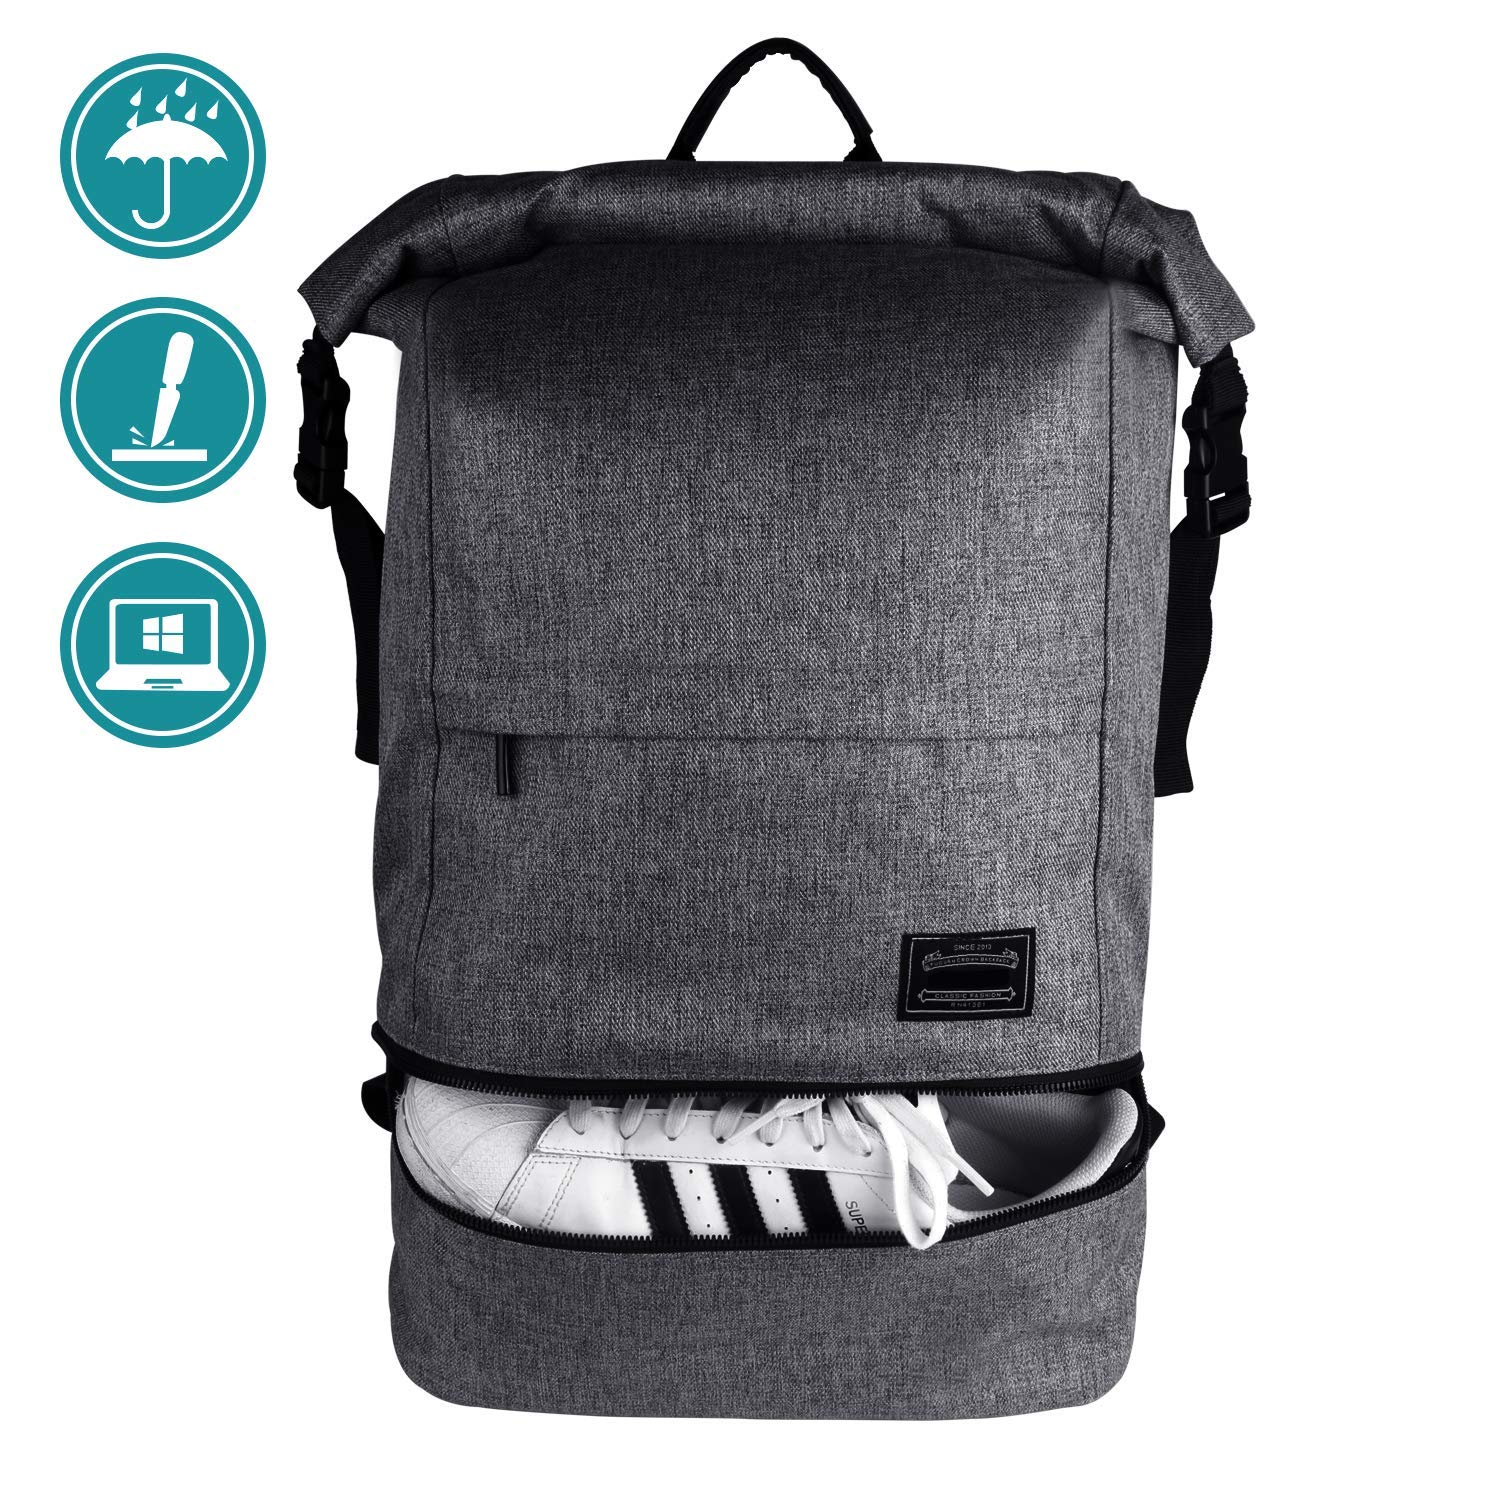 c7ad1d070607 Travel Laptop Backpack, ITSHINY Rucksack Anti-Theft Laptop Bag Roll ...